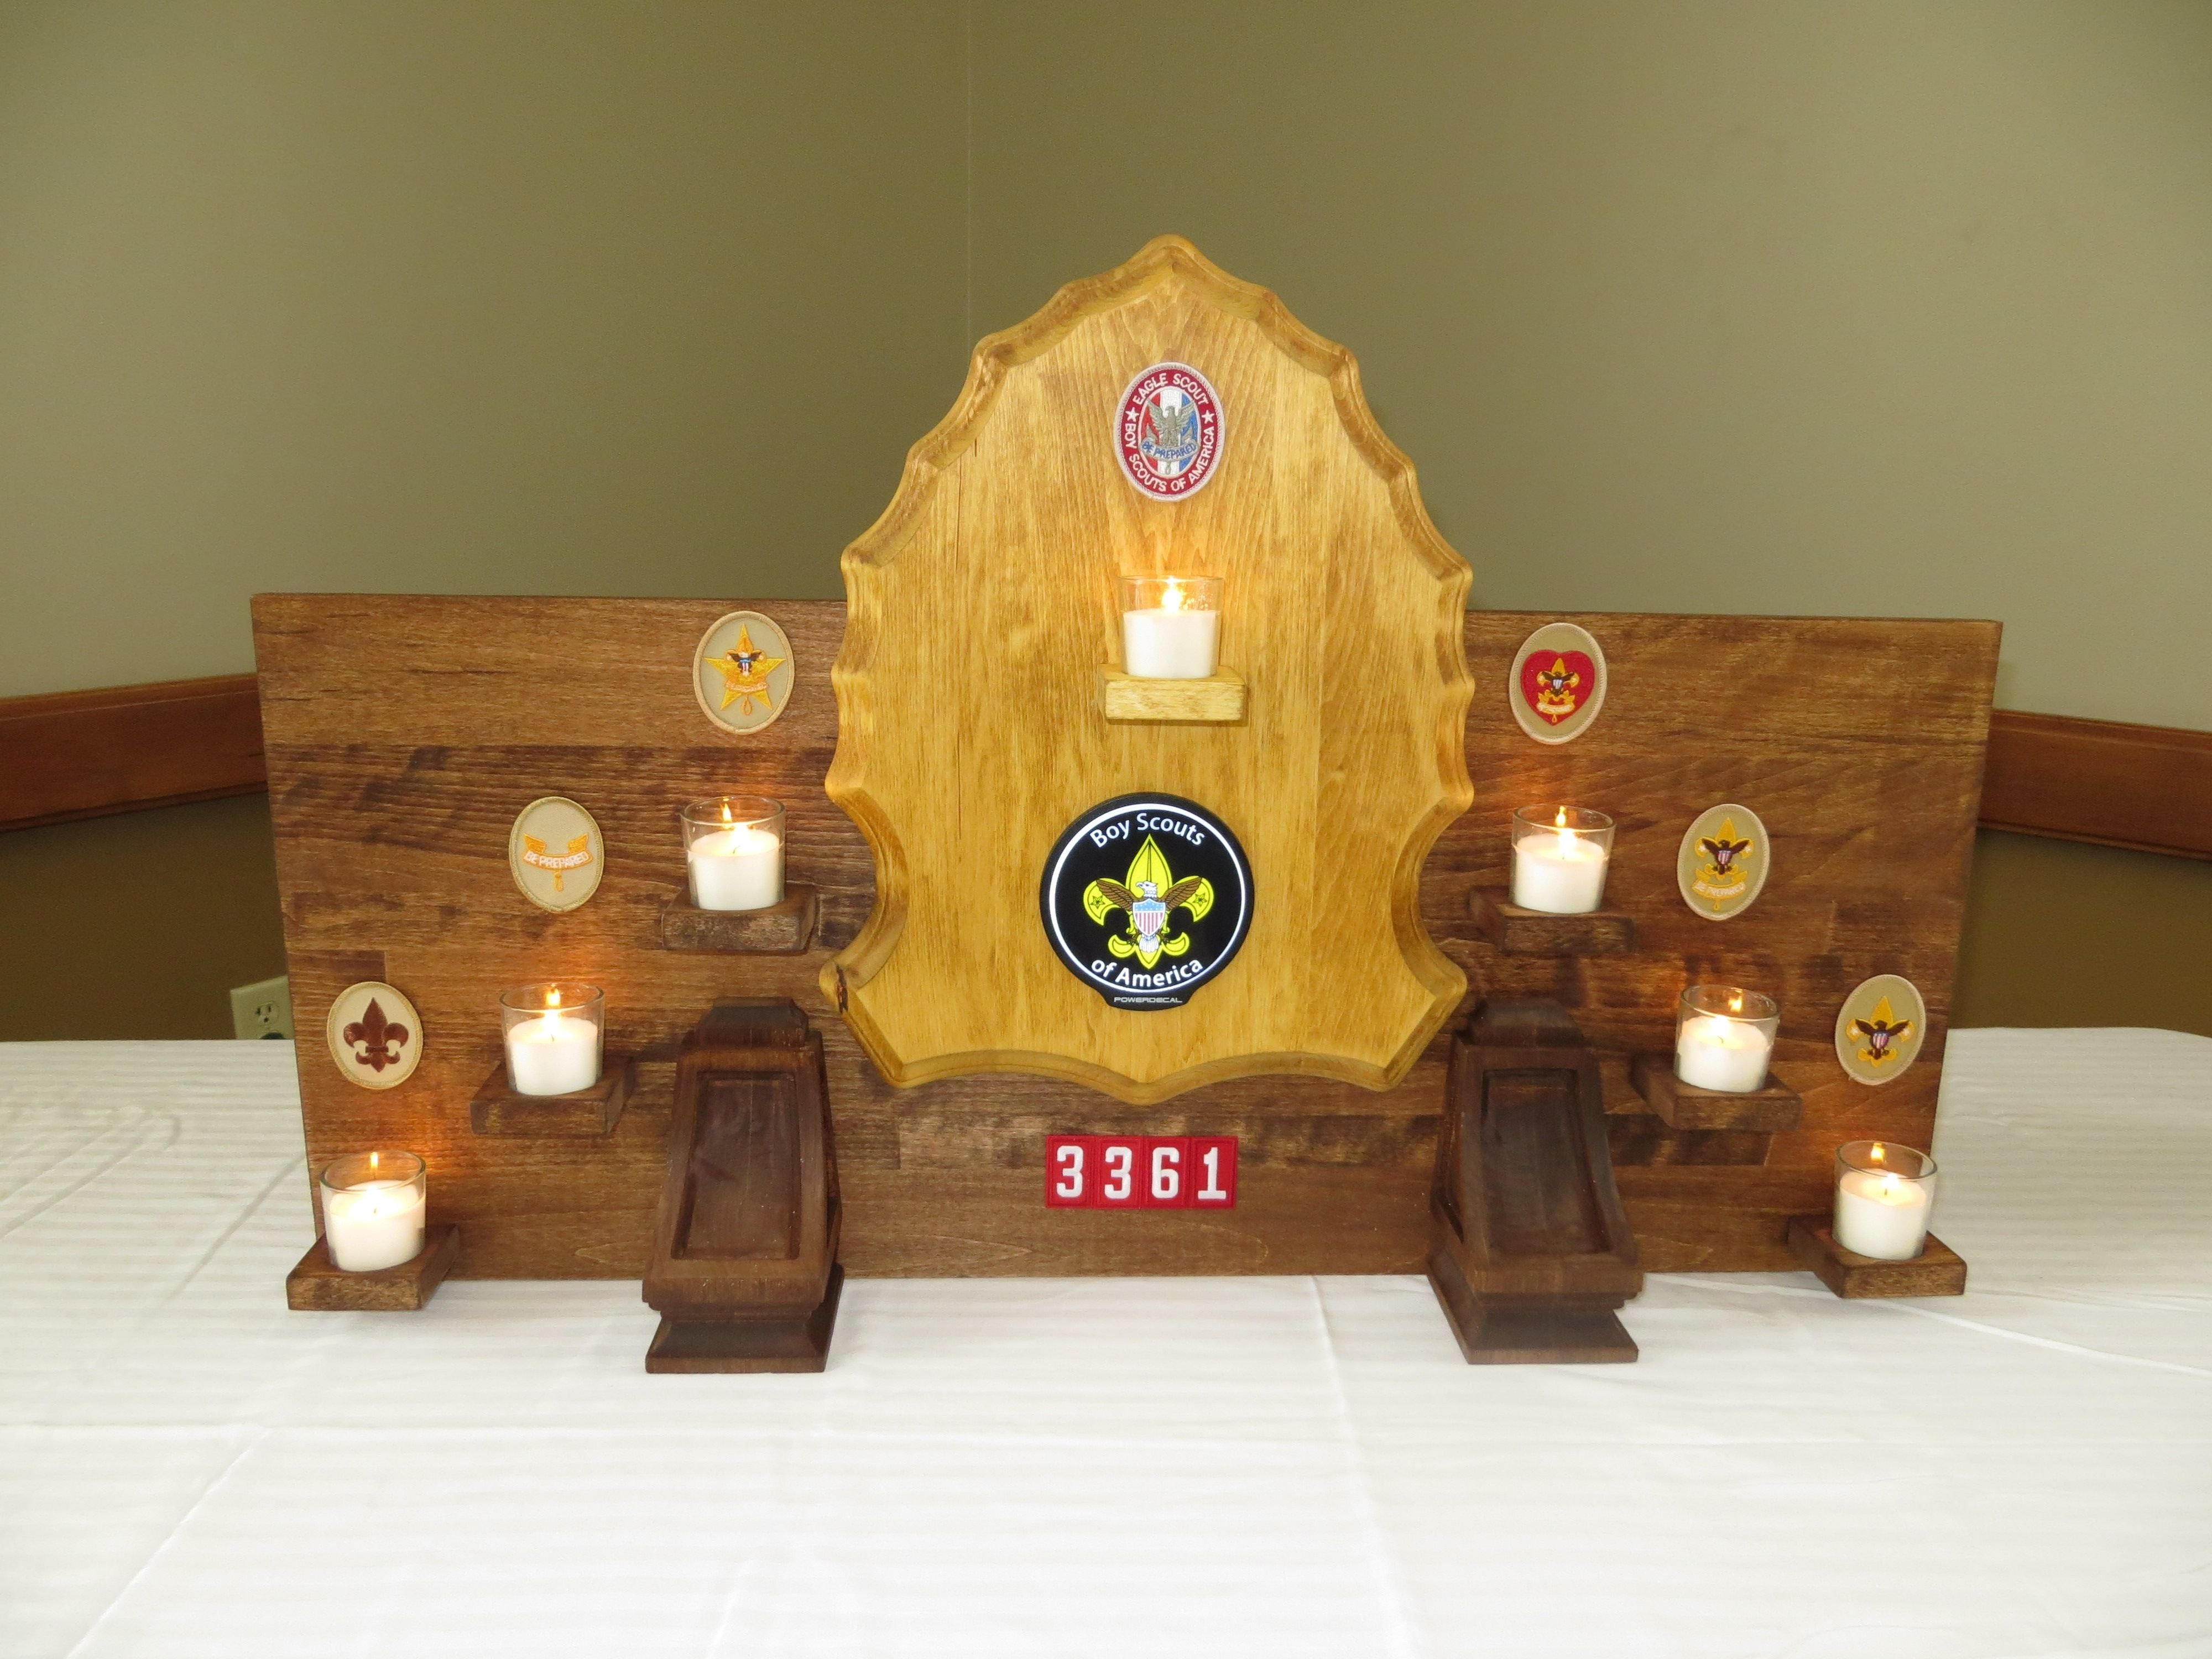 10 Perfect Eagle Court Of Honor Ideas this is a candle holder mark and ben made for our boy scout court of